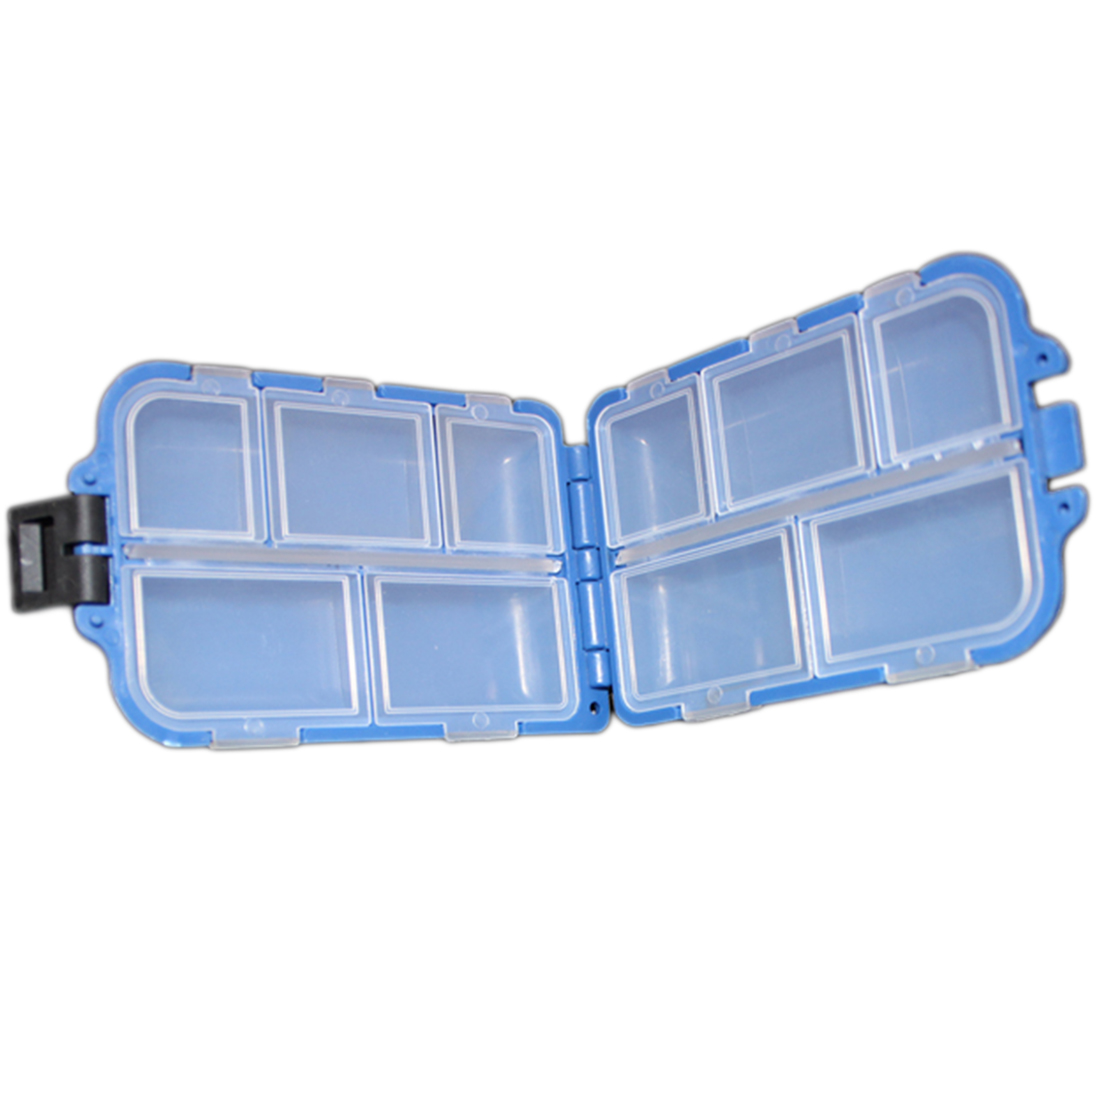 New 10 Compartments Storage Case Fly Fishing Lure Spoon Hook Bait Tackle Case Box Fishing Accessories Tools